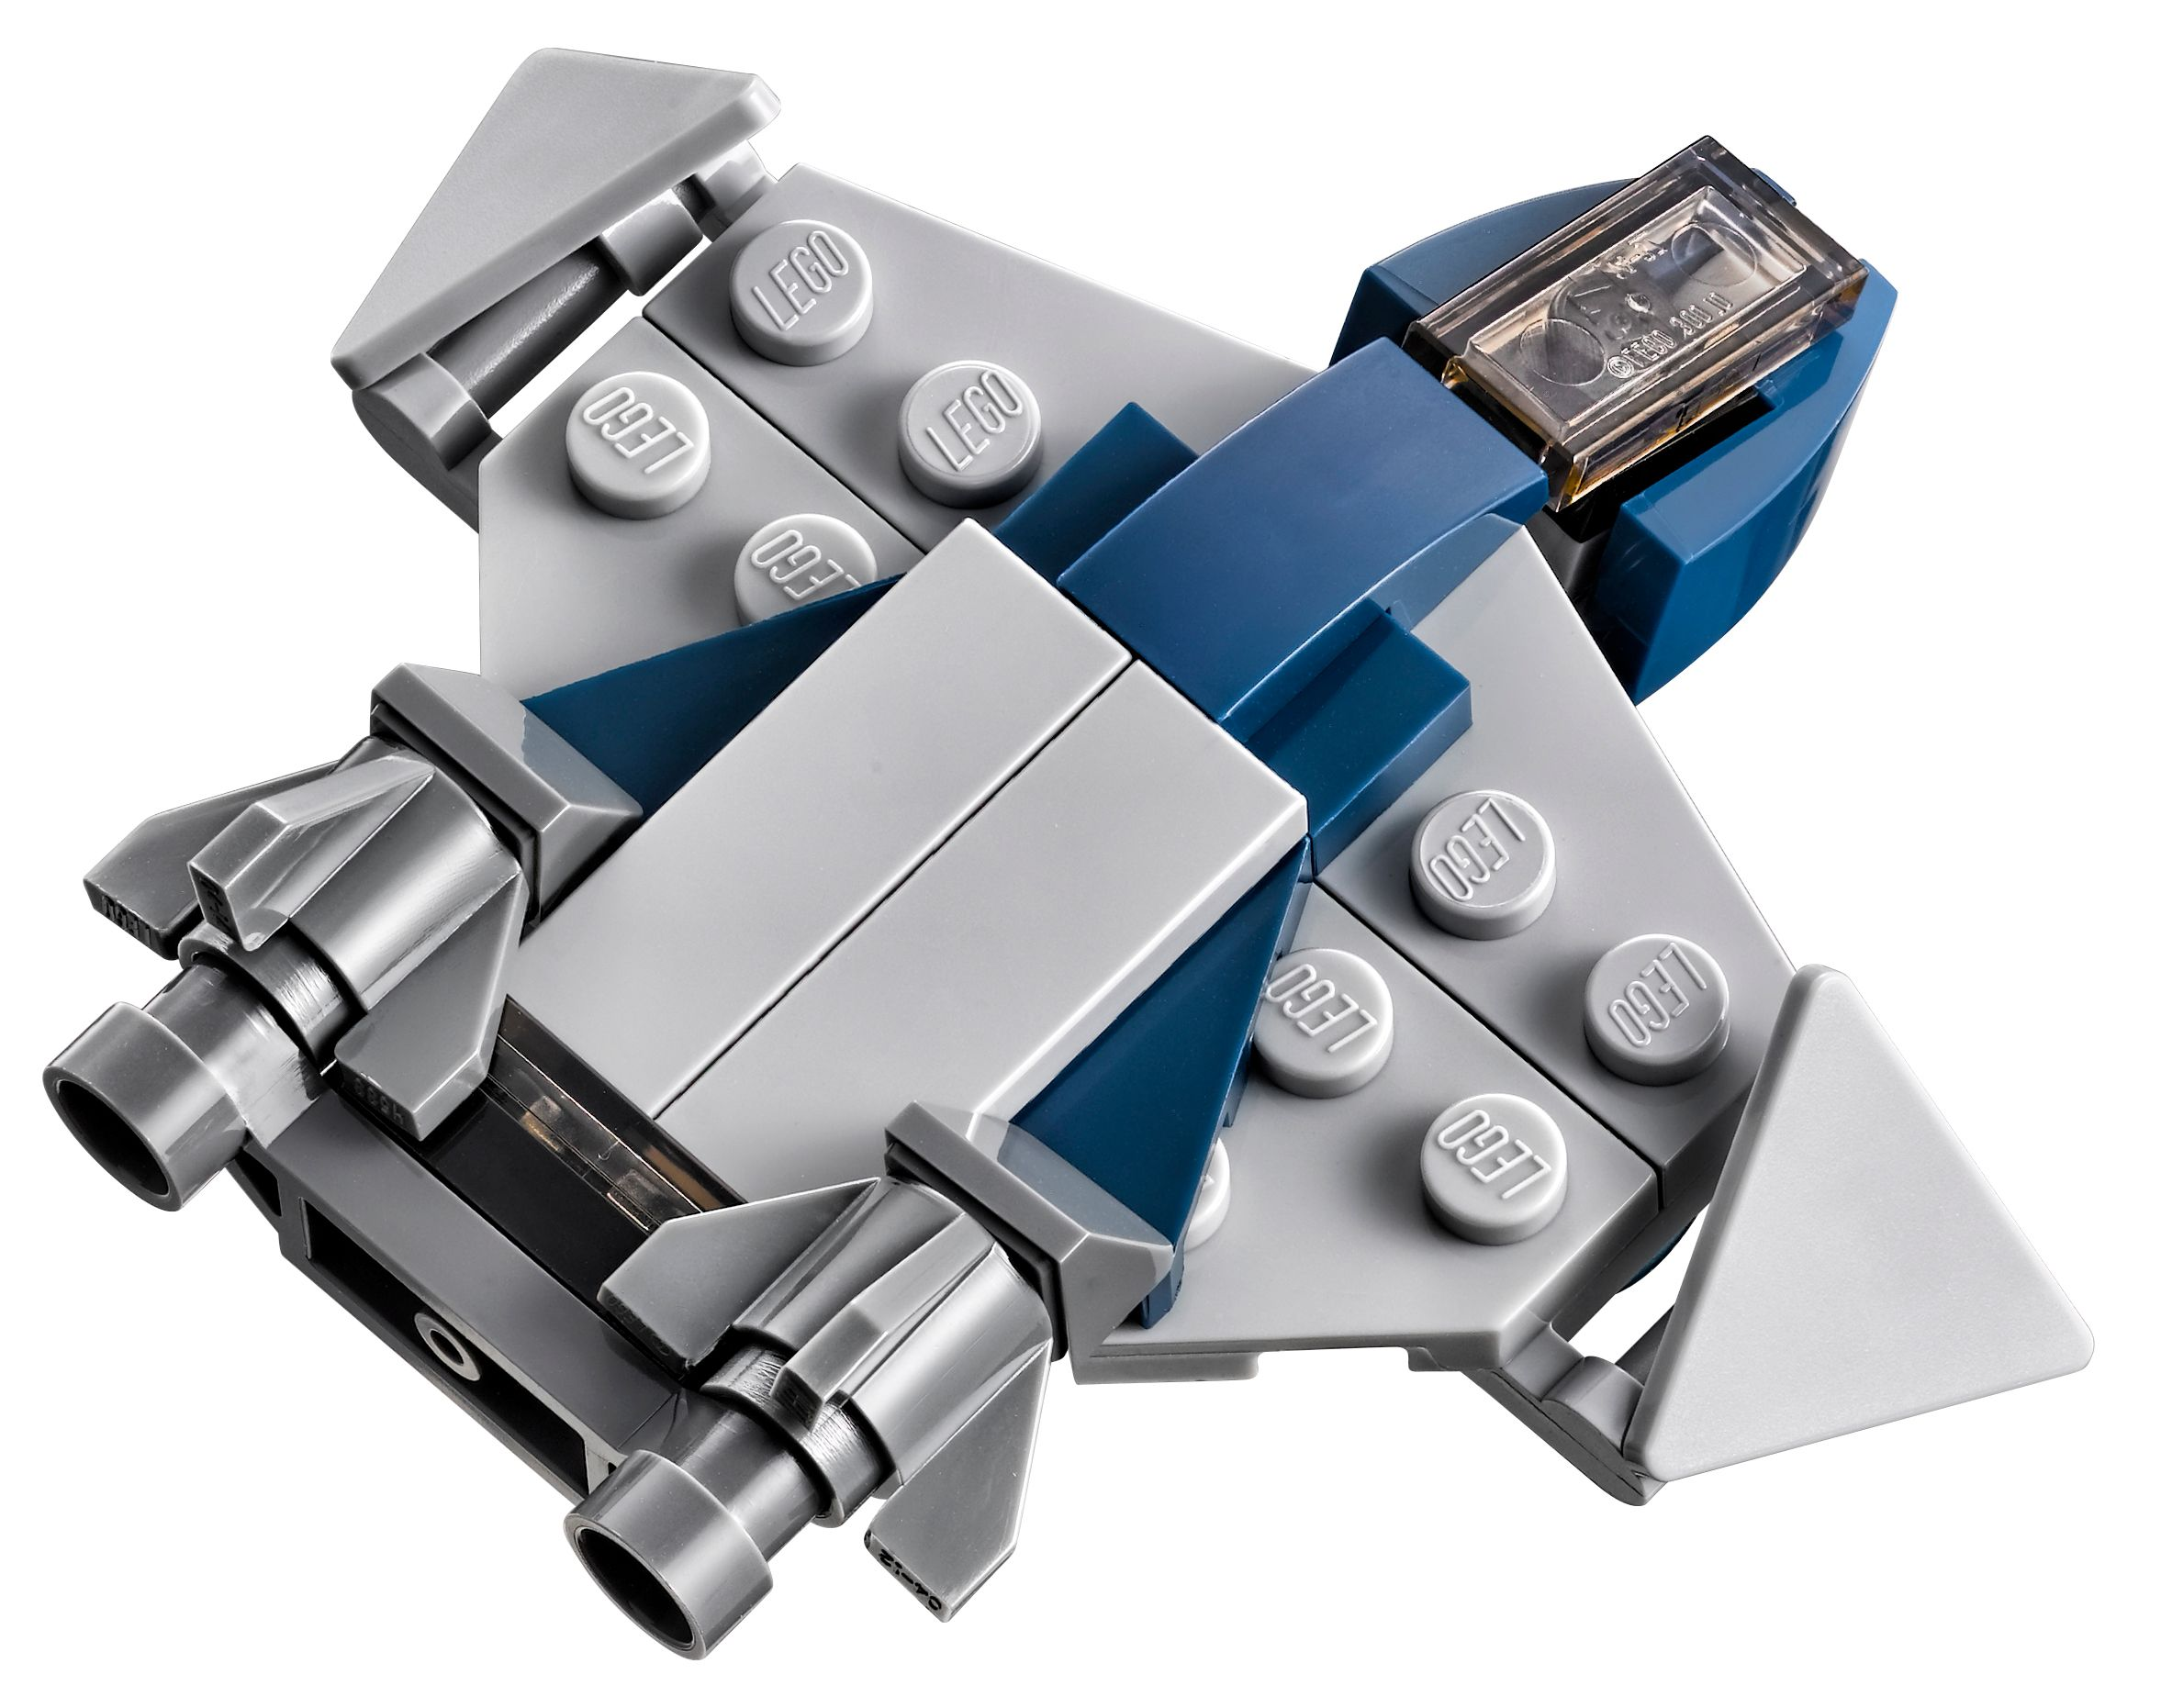 Lego Helicarrier Revealed First Images Of Avengers SHI